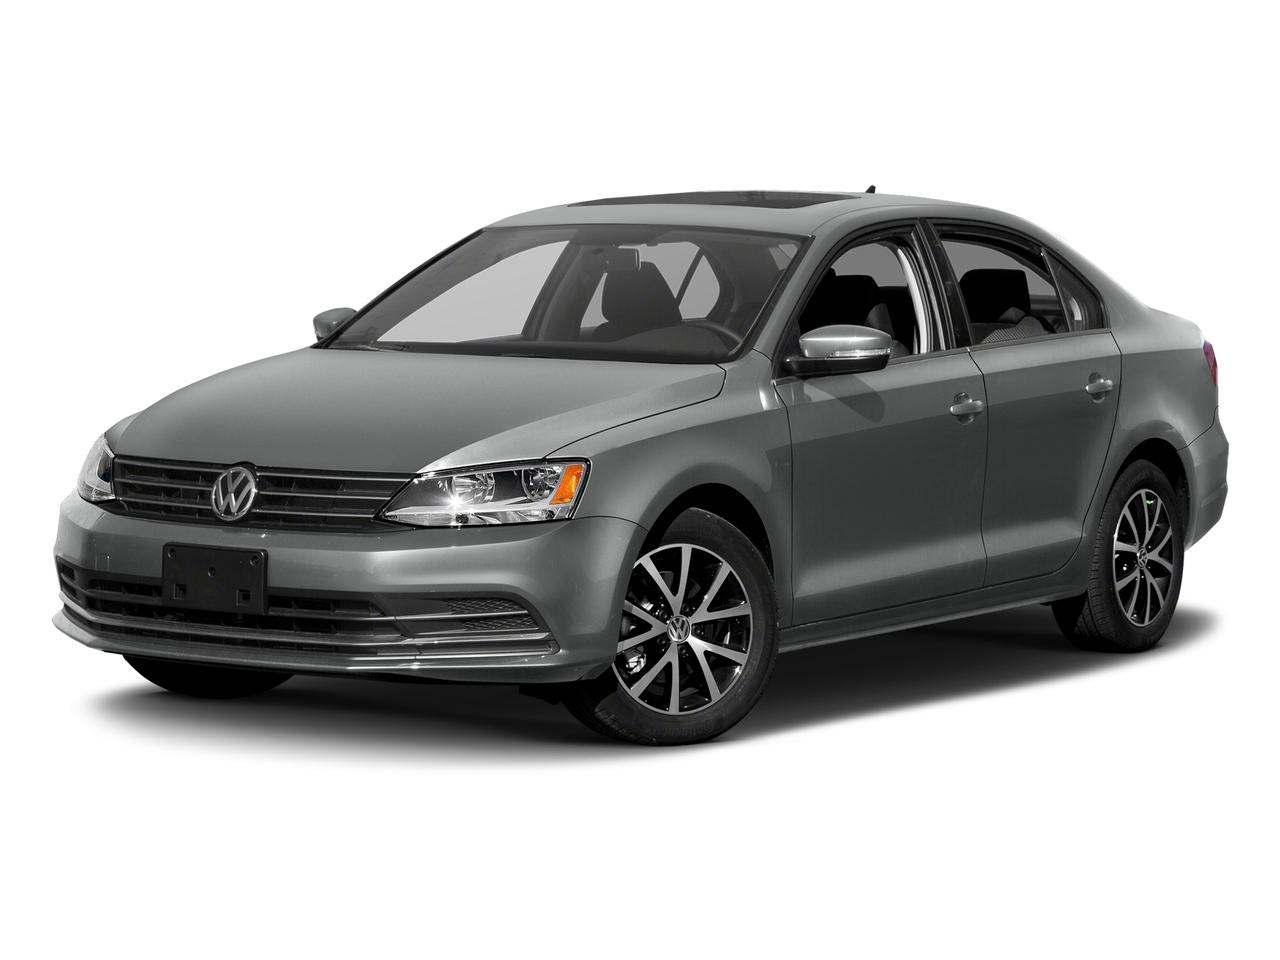 2016 Volkswagen Jetta Sedan Vehicle Photo in Spokane, WA 99207